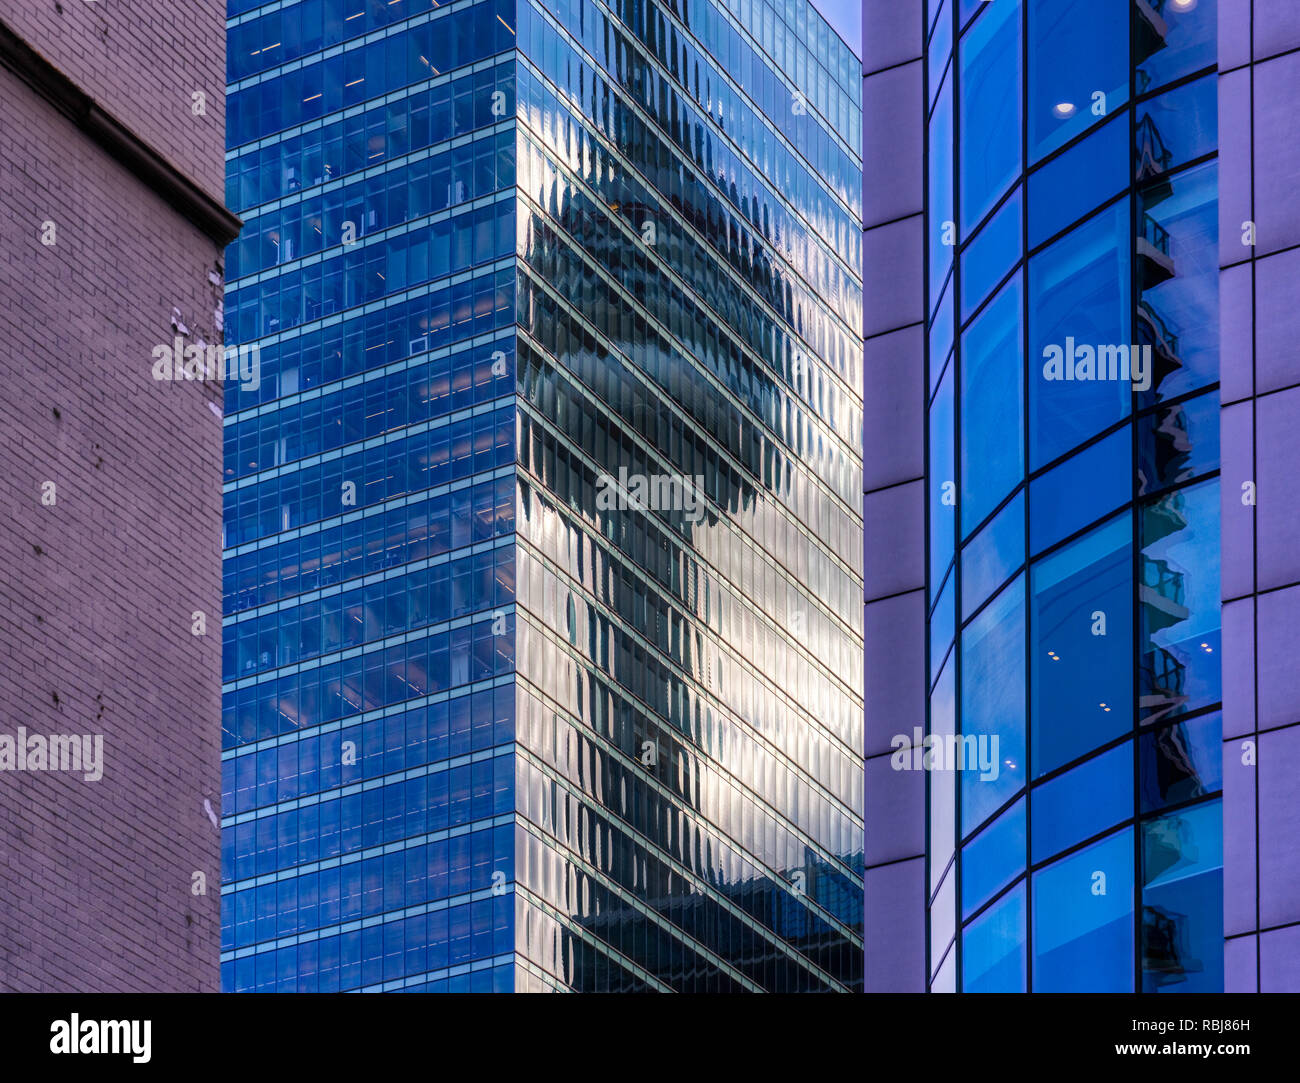 the-cn-tower-reflected-in-the-rbc-centre-aka-the-rbc-dexia-building-in-toronto-canada-as-seen-from-david-pecaut-square-RBJ86H.jpg